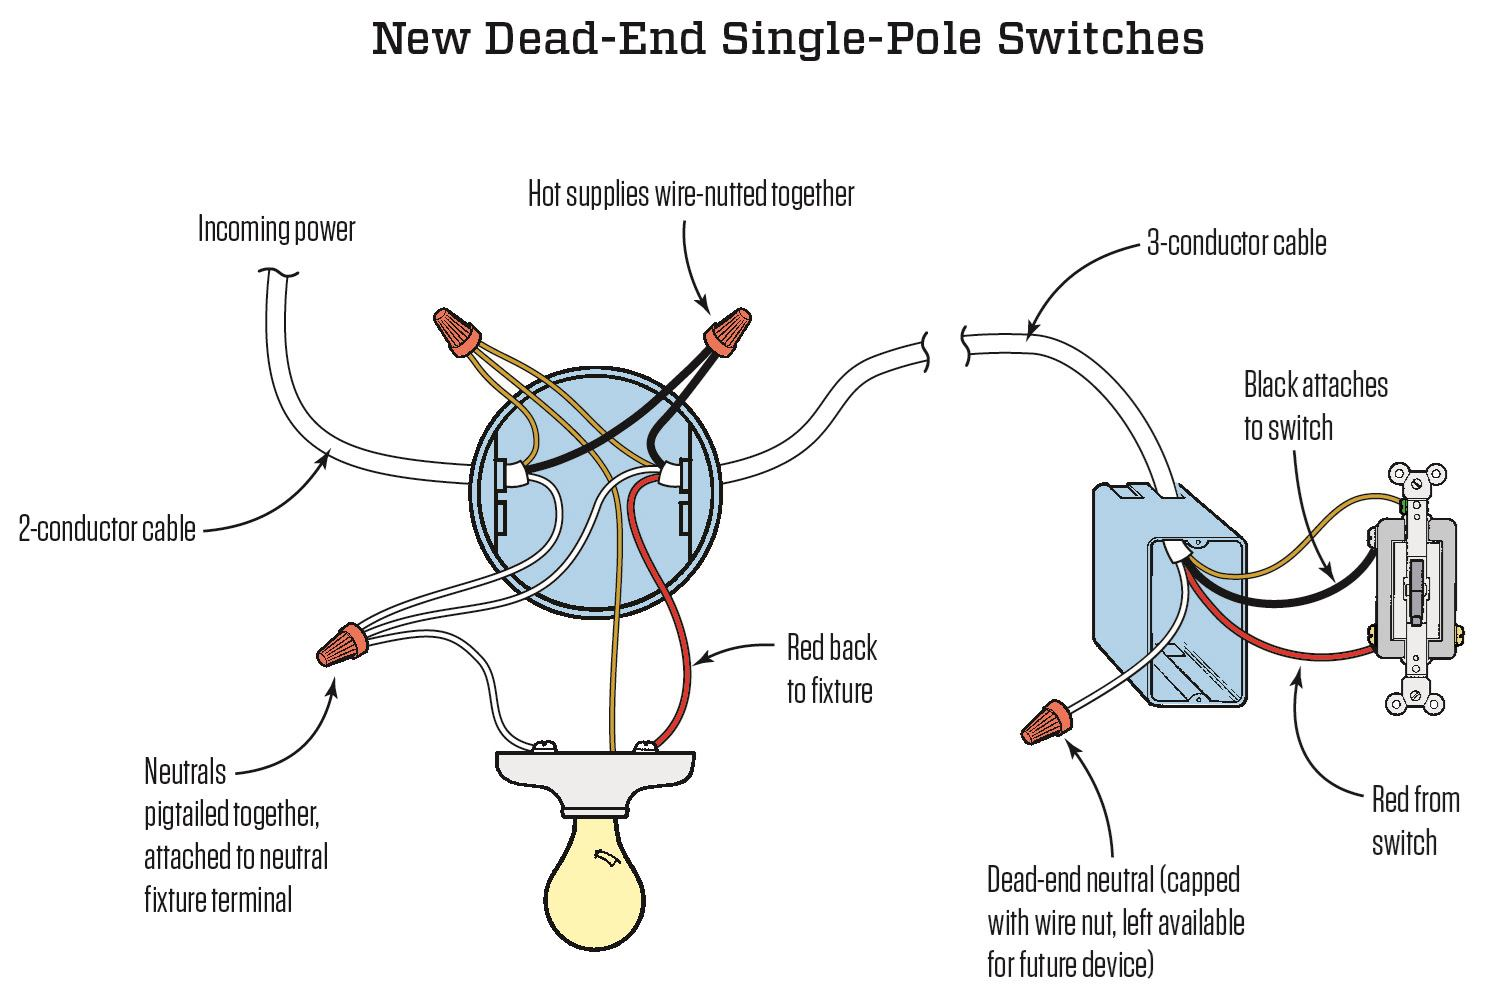 Dead end single pole switches jlc online electrical electrical dead end single pole switches jlc online electrical electrical codes asfbconference2016 Image collections